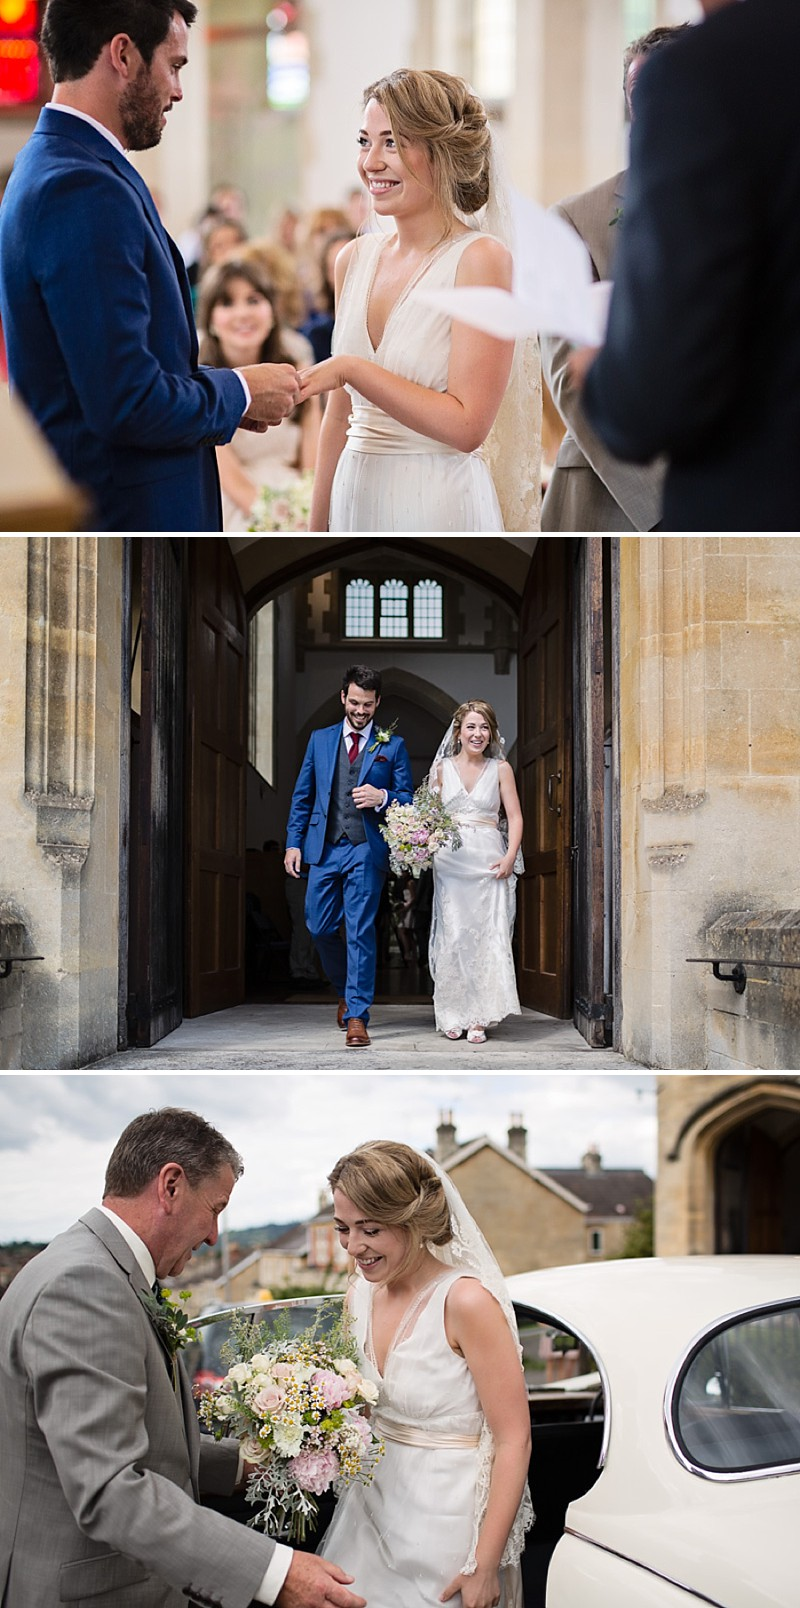 Rustic Marquee Wedding In The South West At Court Farm Near Bath With Bride In Charlie Brear Gown From The Decades Collection And Groom In Navy Reiss Suit rom Isabel Maria Of Allister Freeman Photography_0003